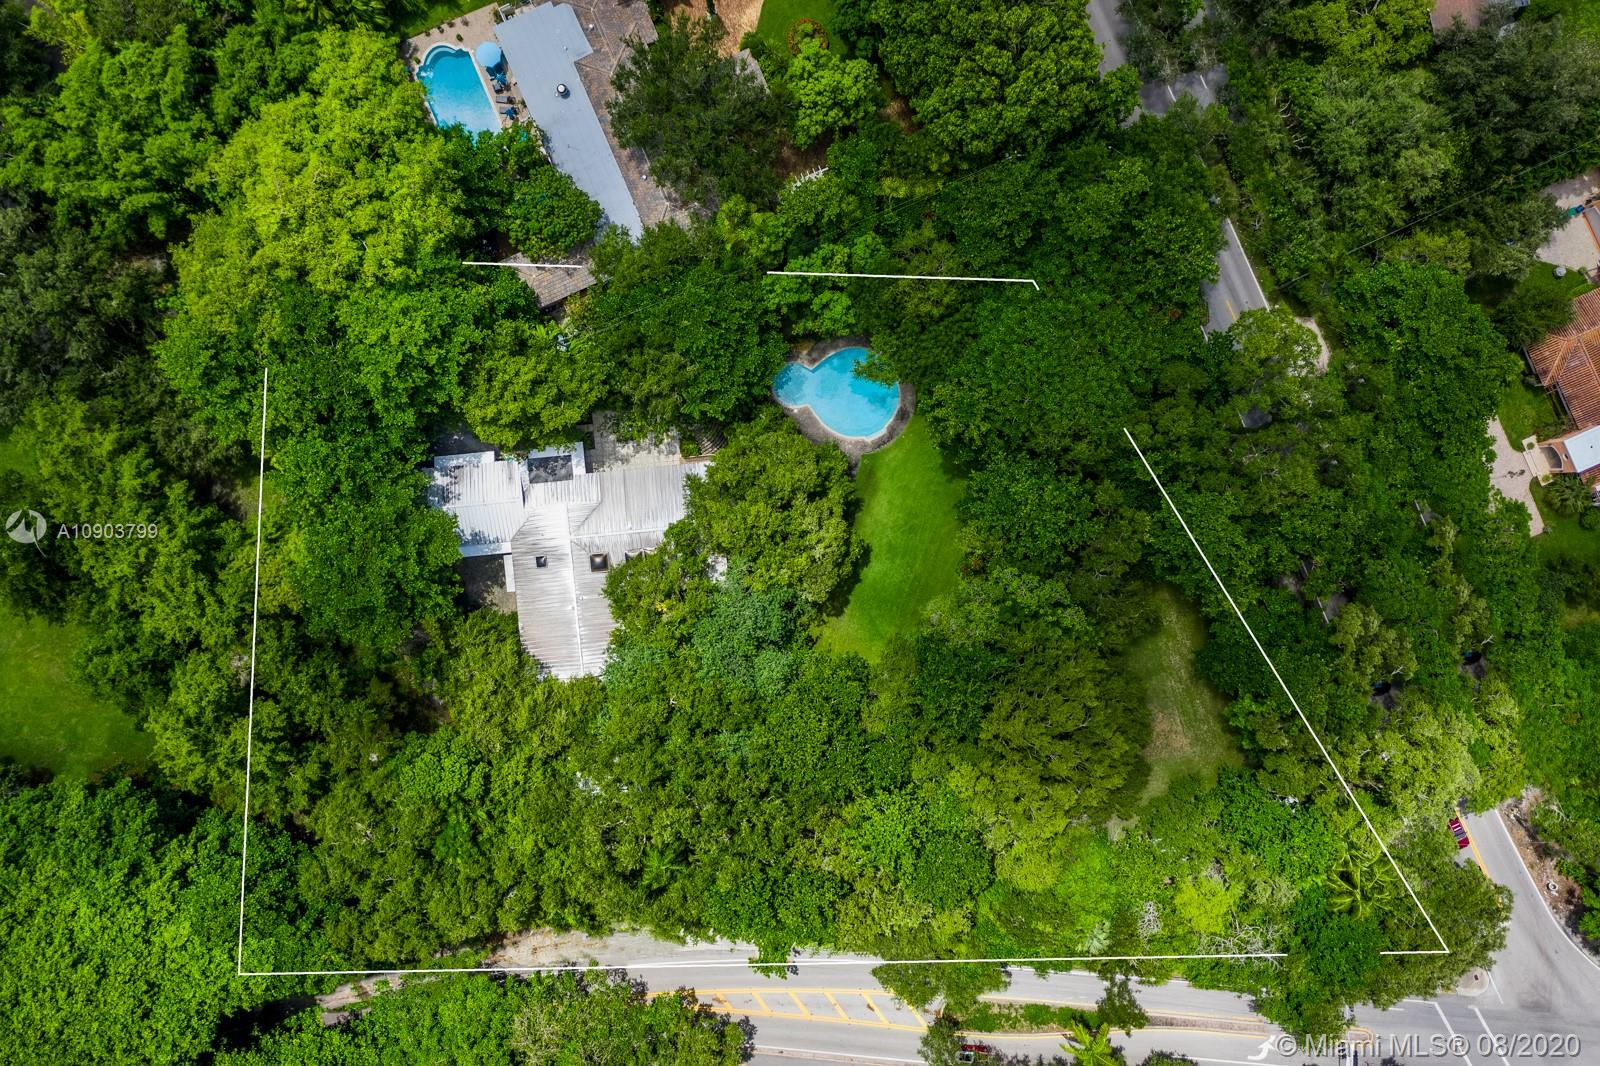 Prime opportunity to own over 1.55 acres in one of the most coveted areas of Coral Gables. Sprawling green land surrounds the existing home, together with natural coral rock on the property. Walled property, Mature oaks and trees allows for ultimate privacy in the midst of it all. Owner occupied, Easy to show.